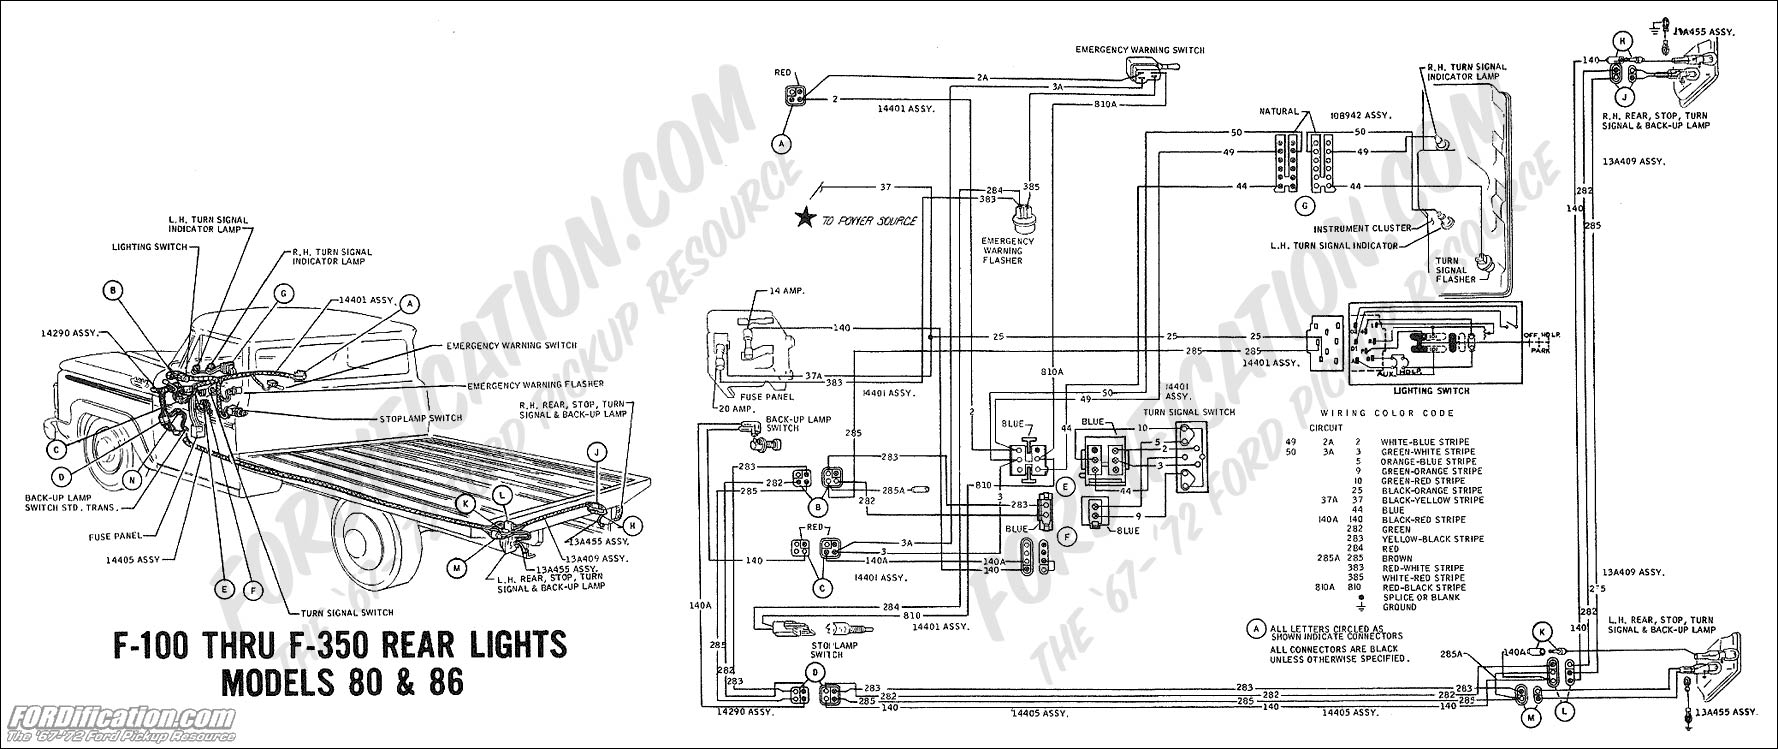 1970 Ford Truck F700 Wiring Diagrams Content Resource Of F550 Diagram For Alt Technical Drawings And Schematics Section H Rh Fordification Com F600 89 Schematic